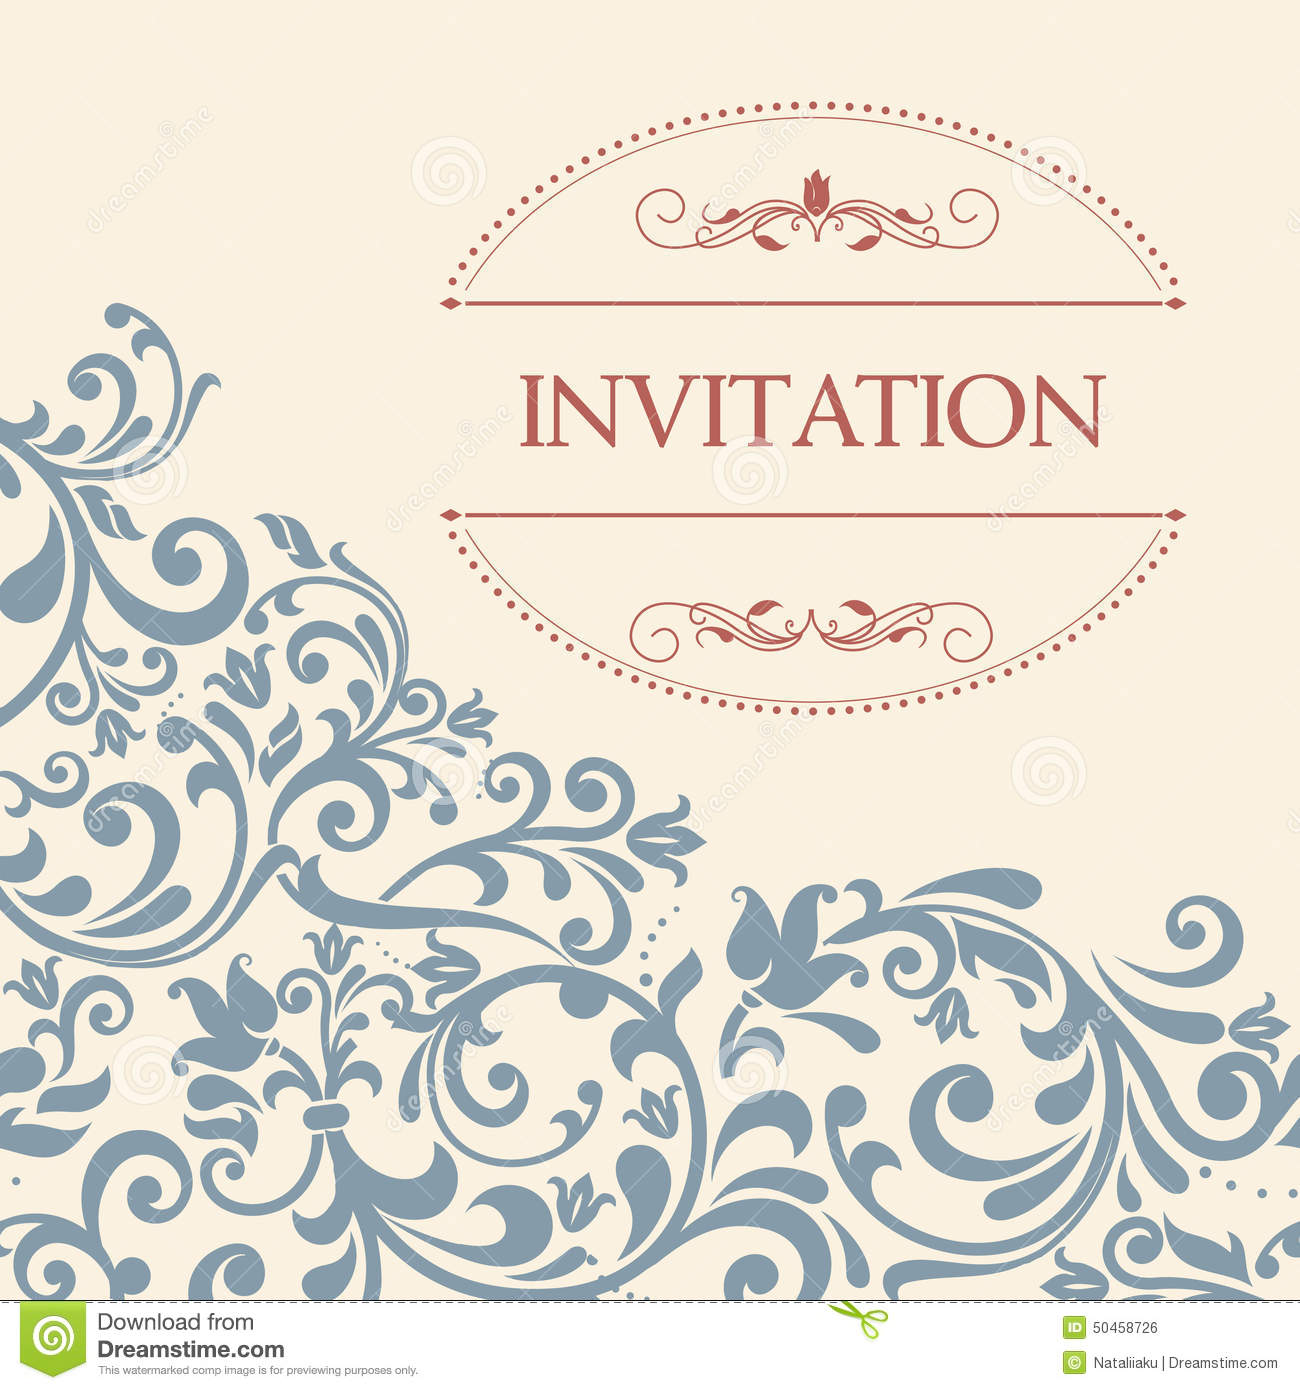 vintage greeting card invitation with floral ornaments stock vector